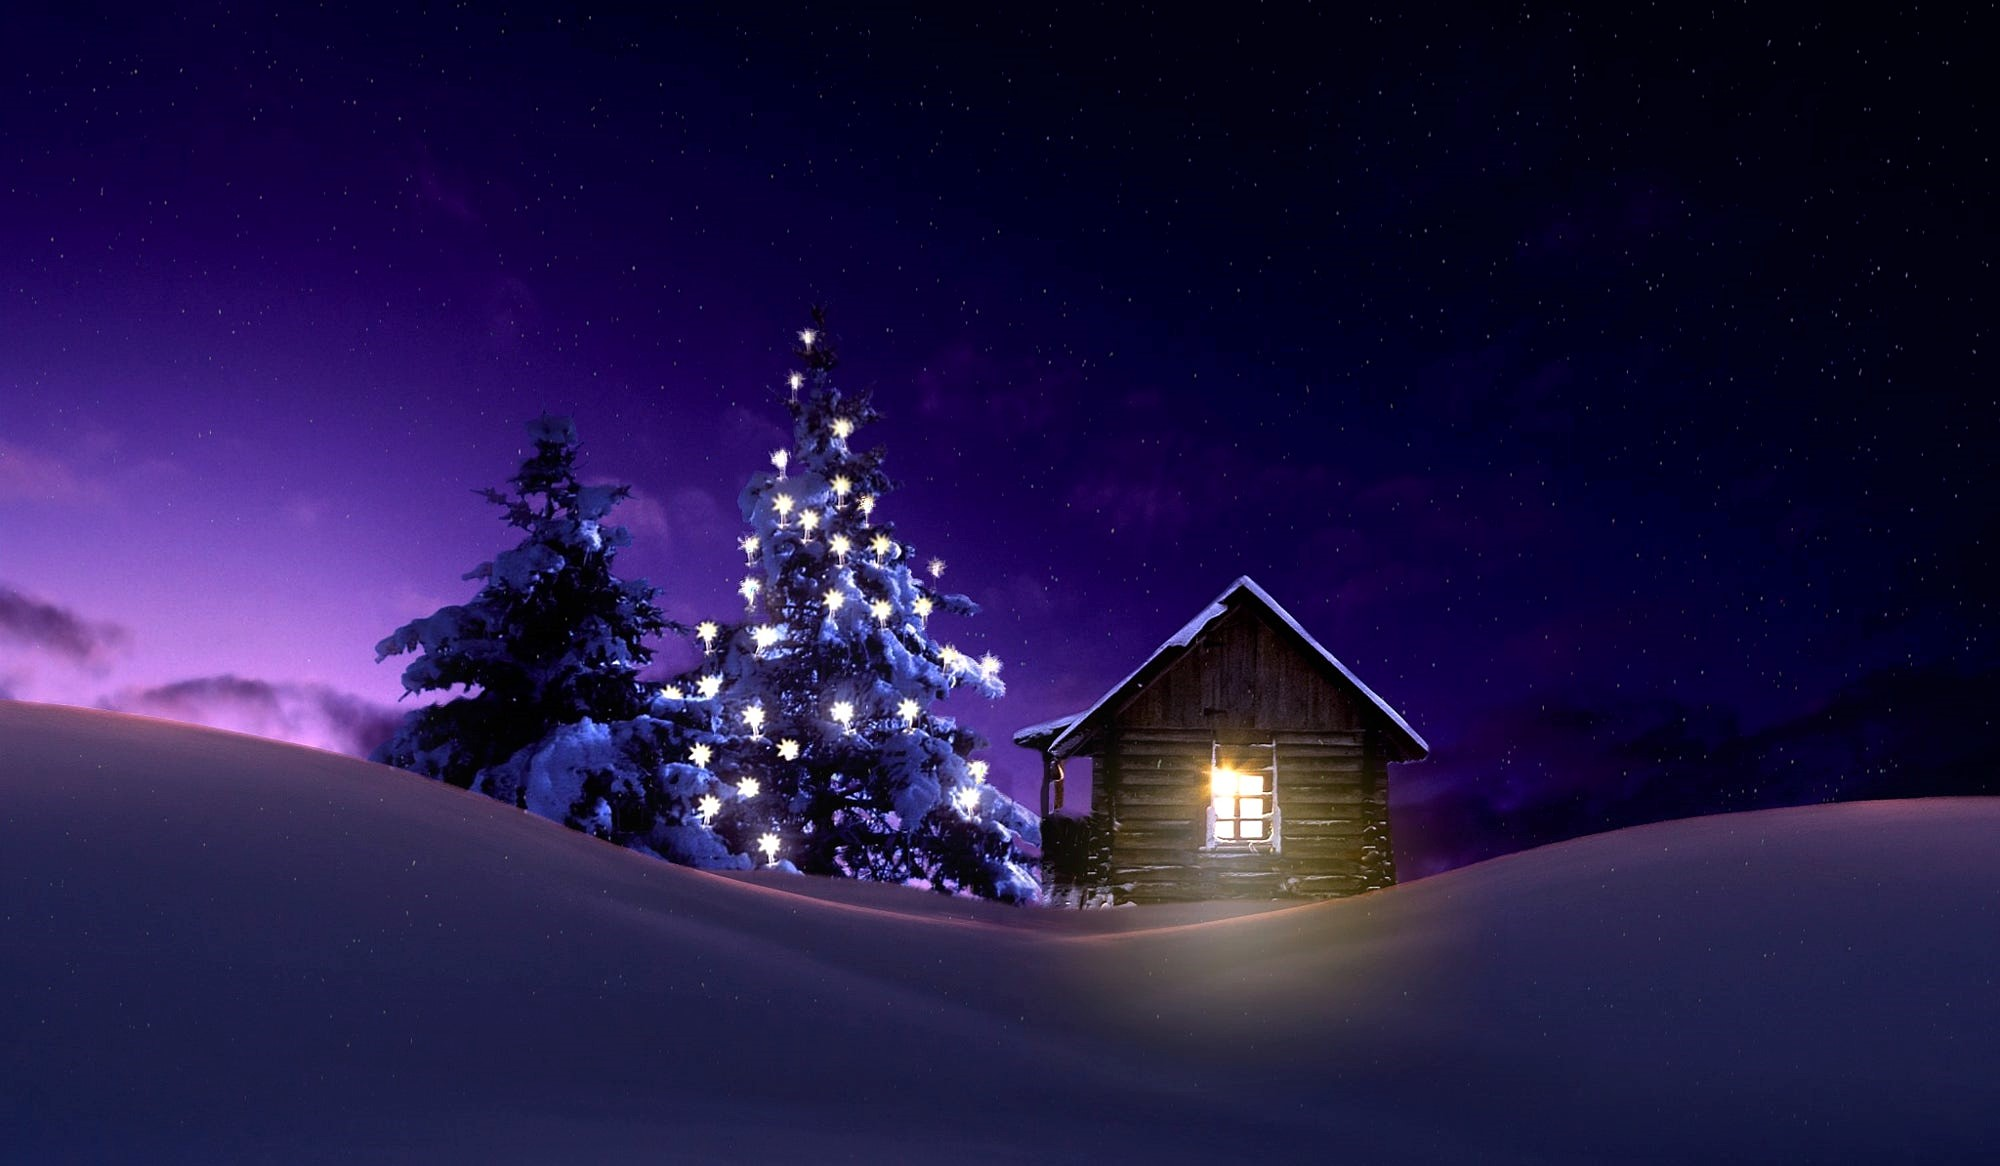 Christmas Lighted Tree Outside Winter Cabin Wallpaper Hd Holidays 4k Wallpapers Images Photos And Background